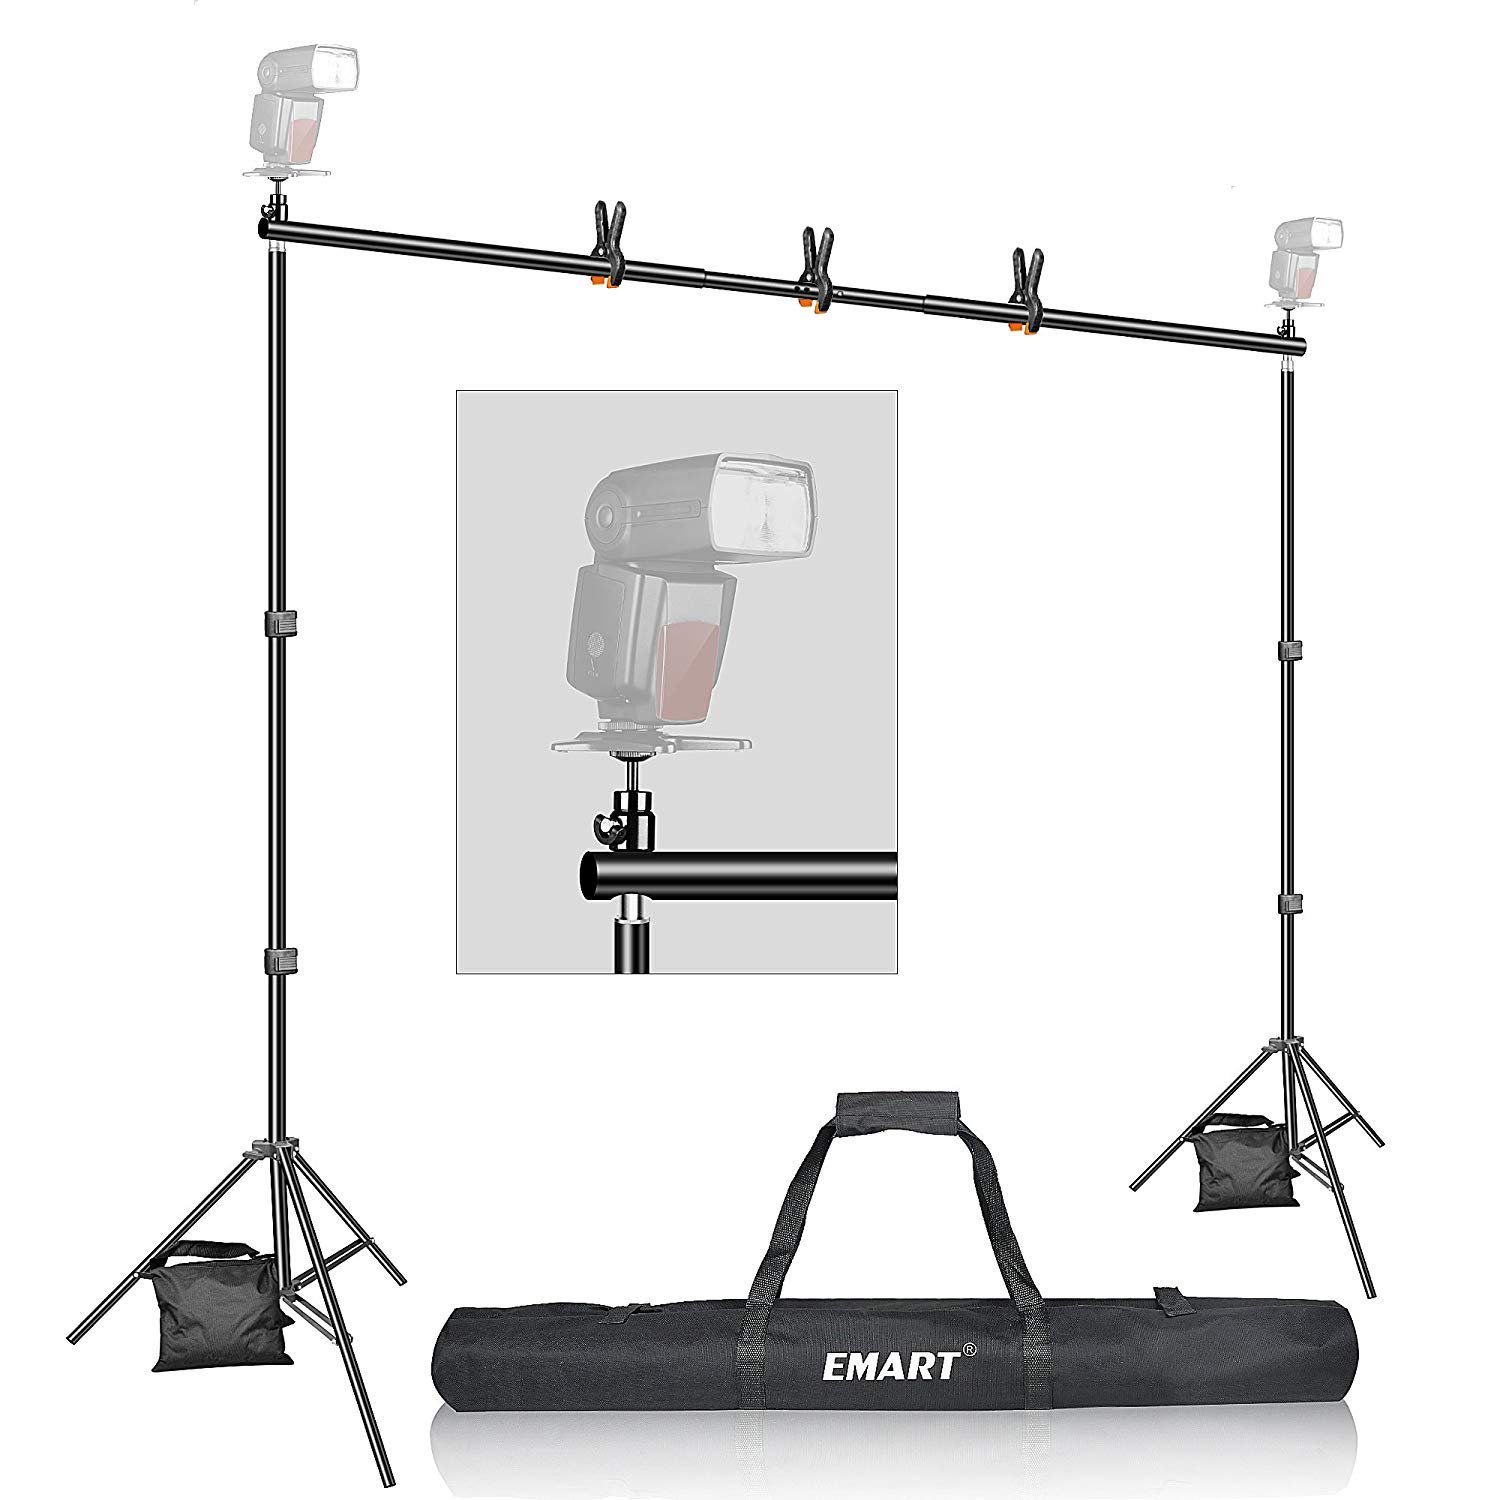 Backdrop Stand, Emart 7x10ft Photo Video Studio Muslin Background Stand Backdrop Support System Kit with Mini Ball Head, Photography Studio by EMART